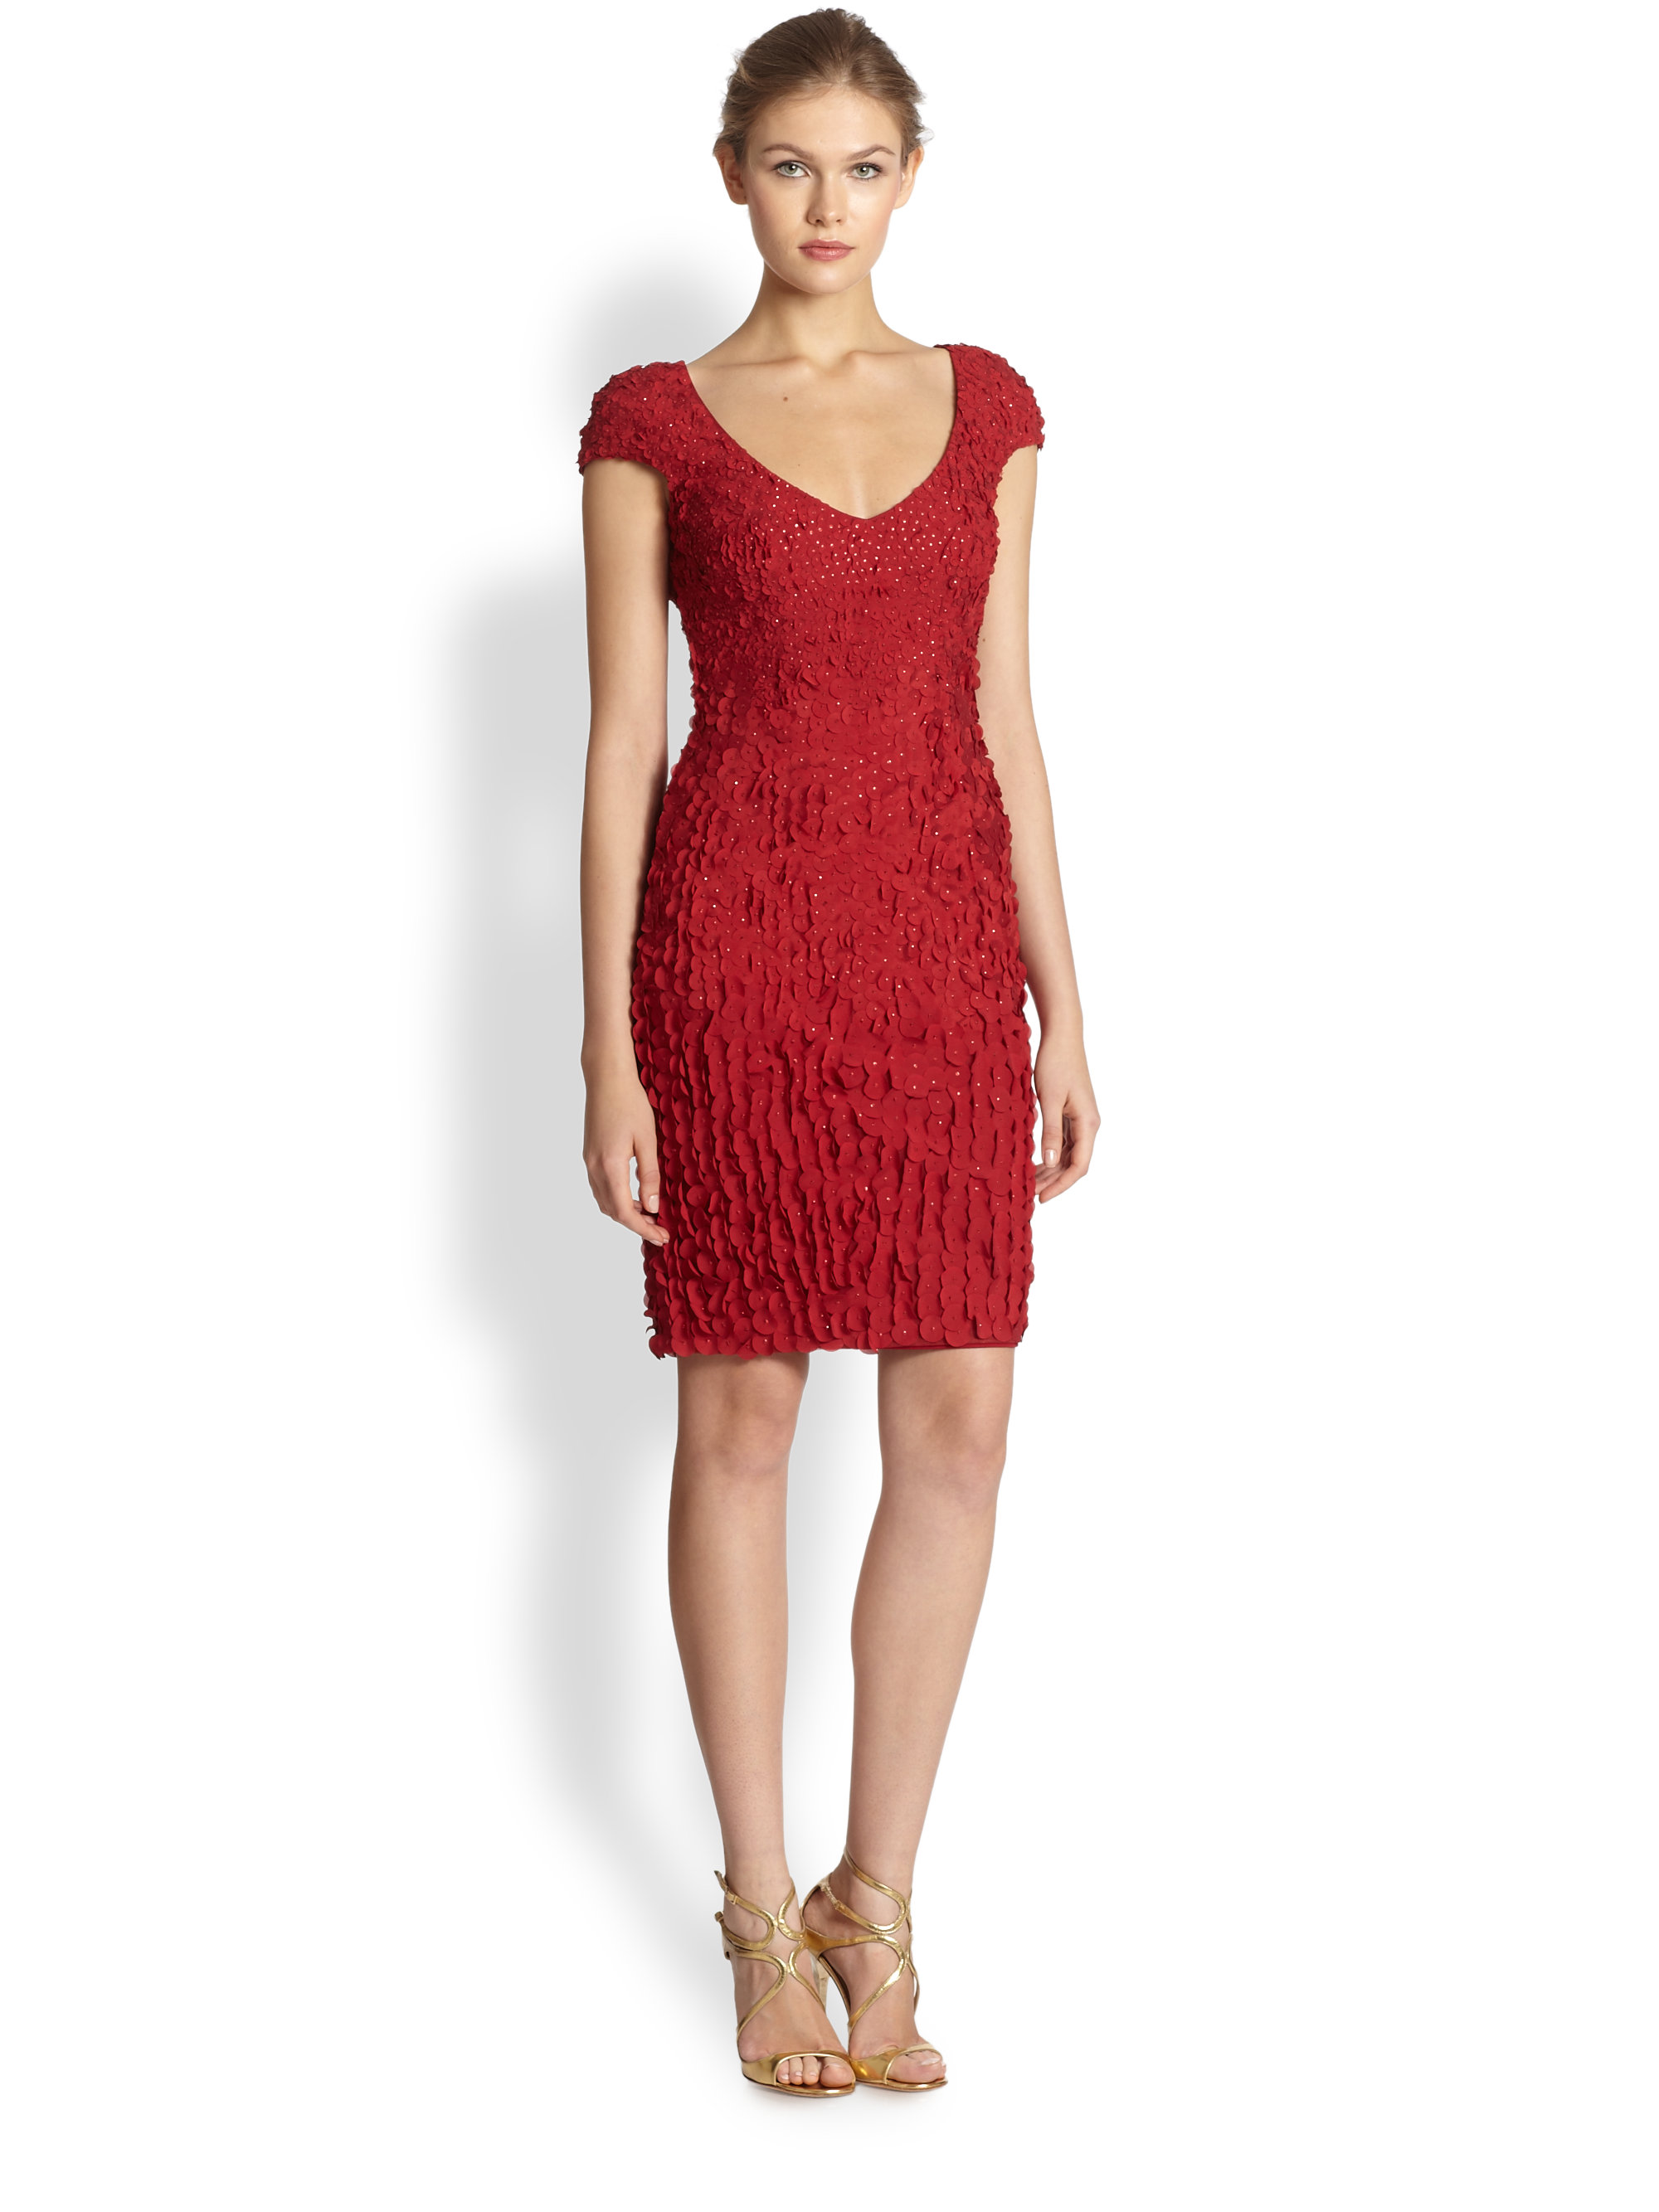 Lyst - Theia Petal Cocktail Dress in Red